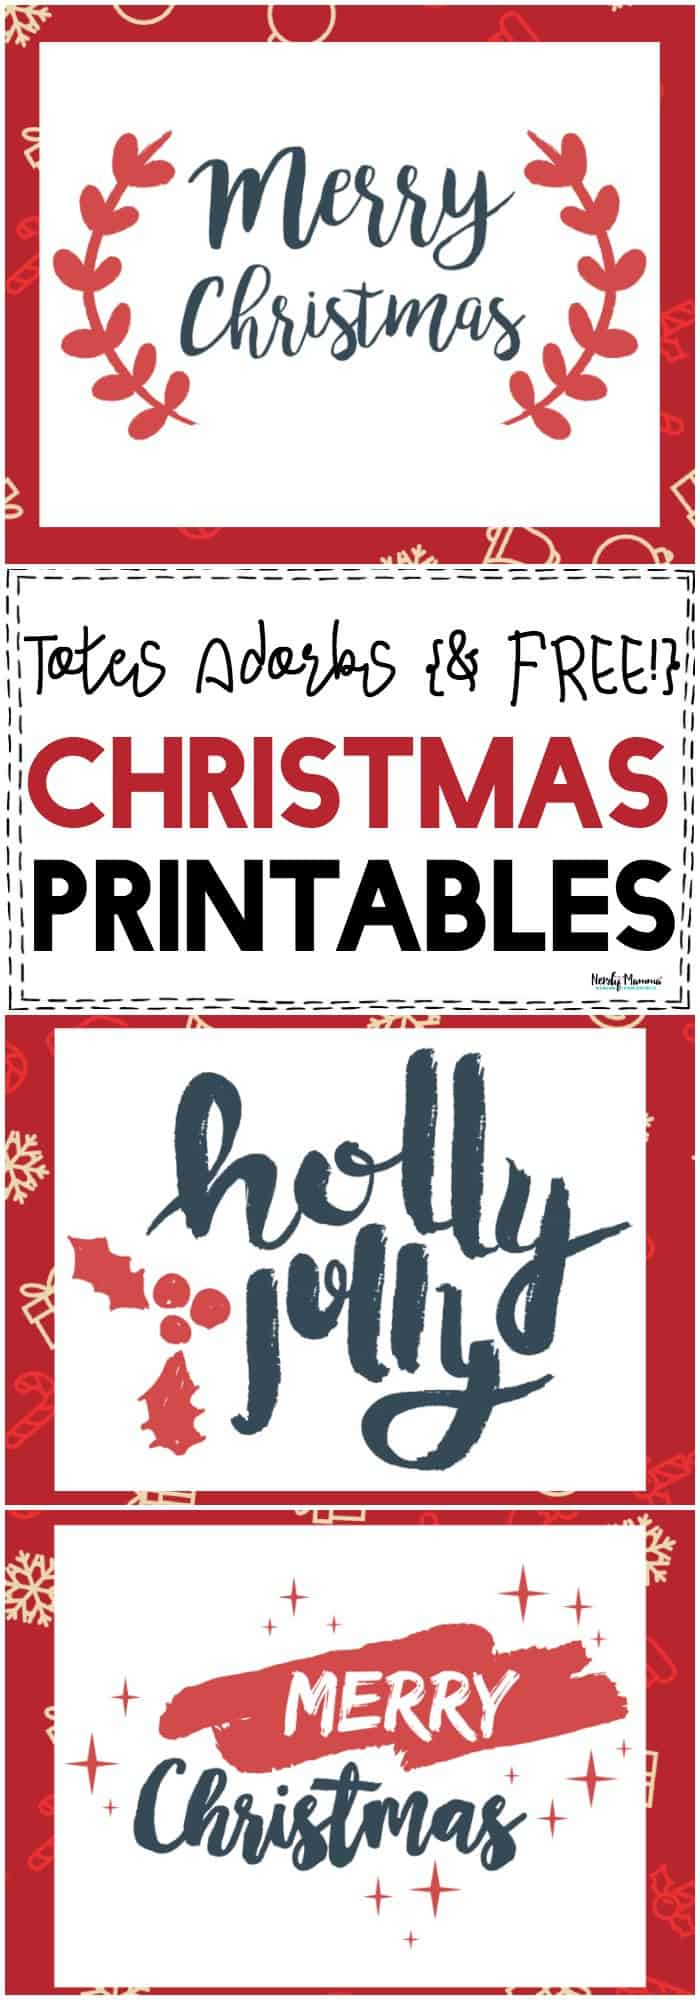 OMG! Check out these totes adorbs {& FREE!} Merry Christmas Printables! They're the cutest printable wall art for Christmas! #Christmas #FreePrintables #ChristmasPrintables